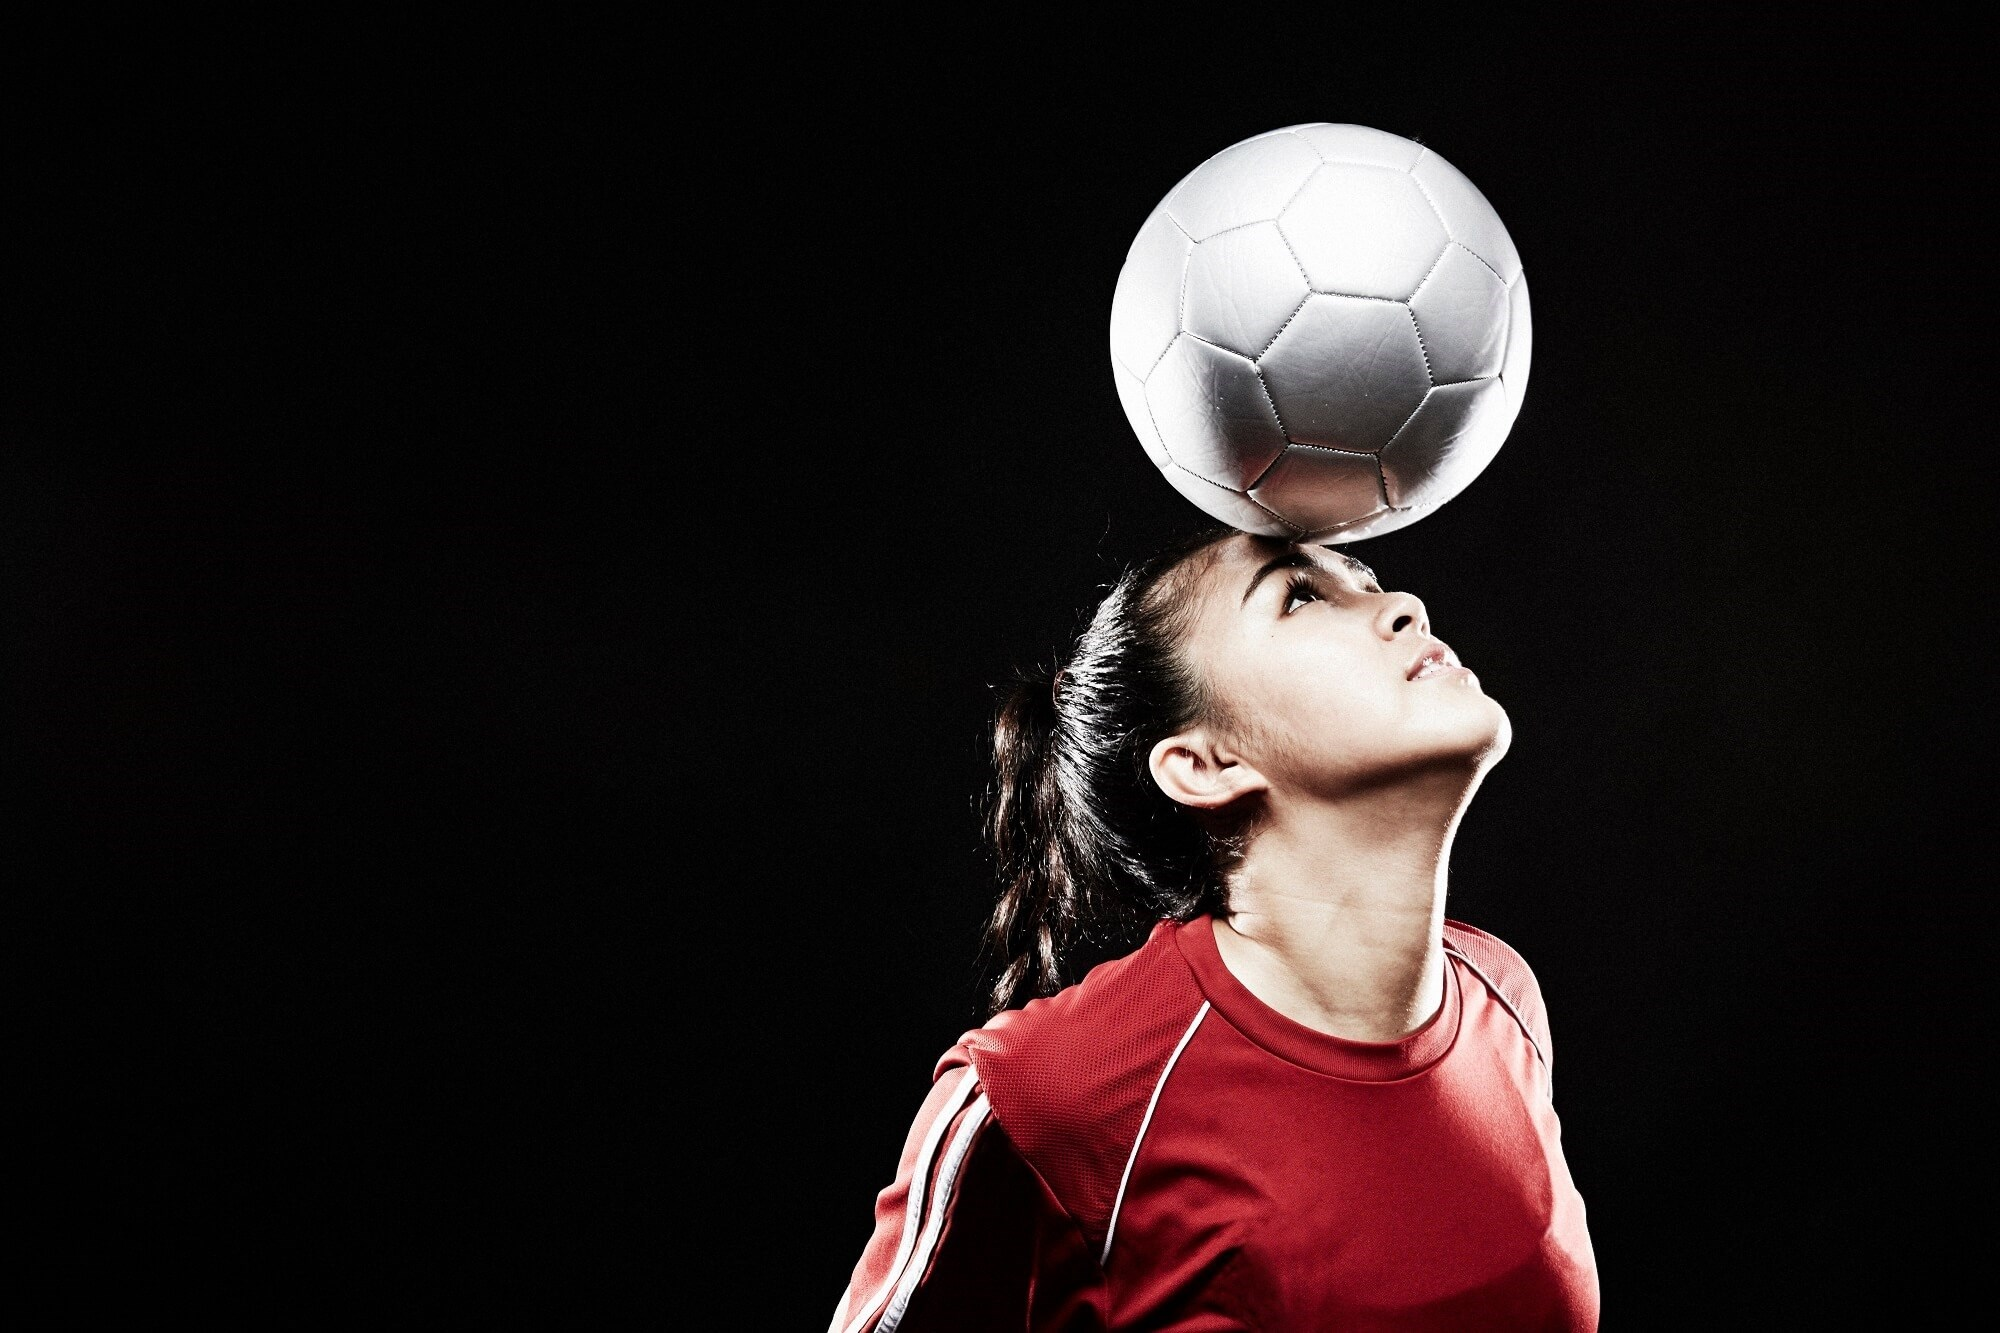 Compression Collar May Protect Brain of Female Soccer Players